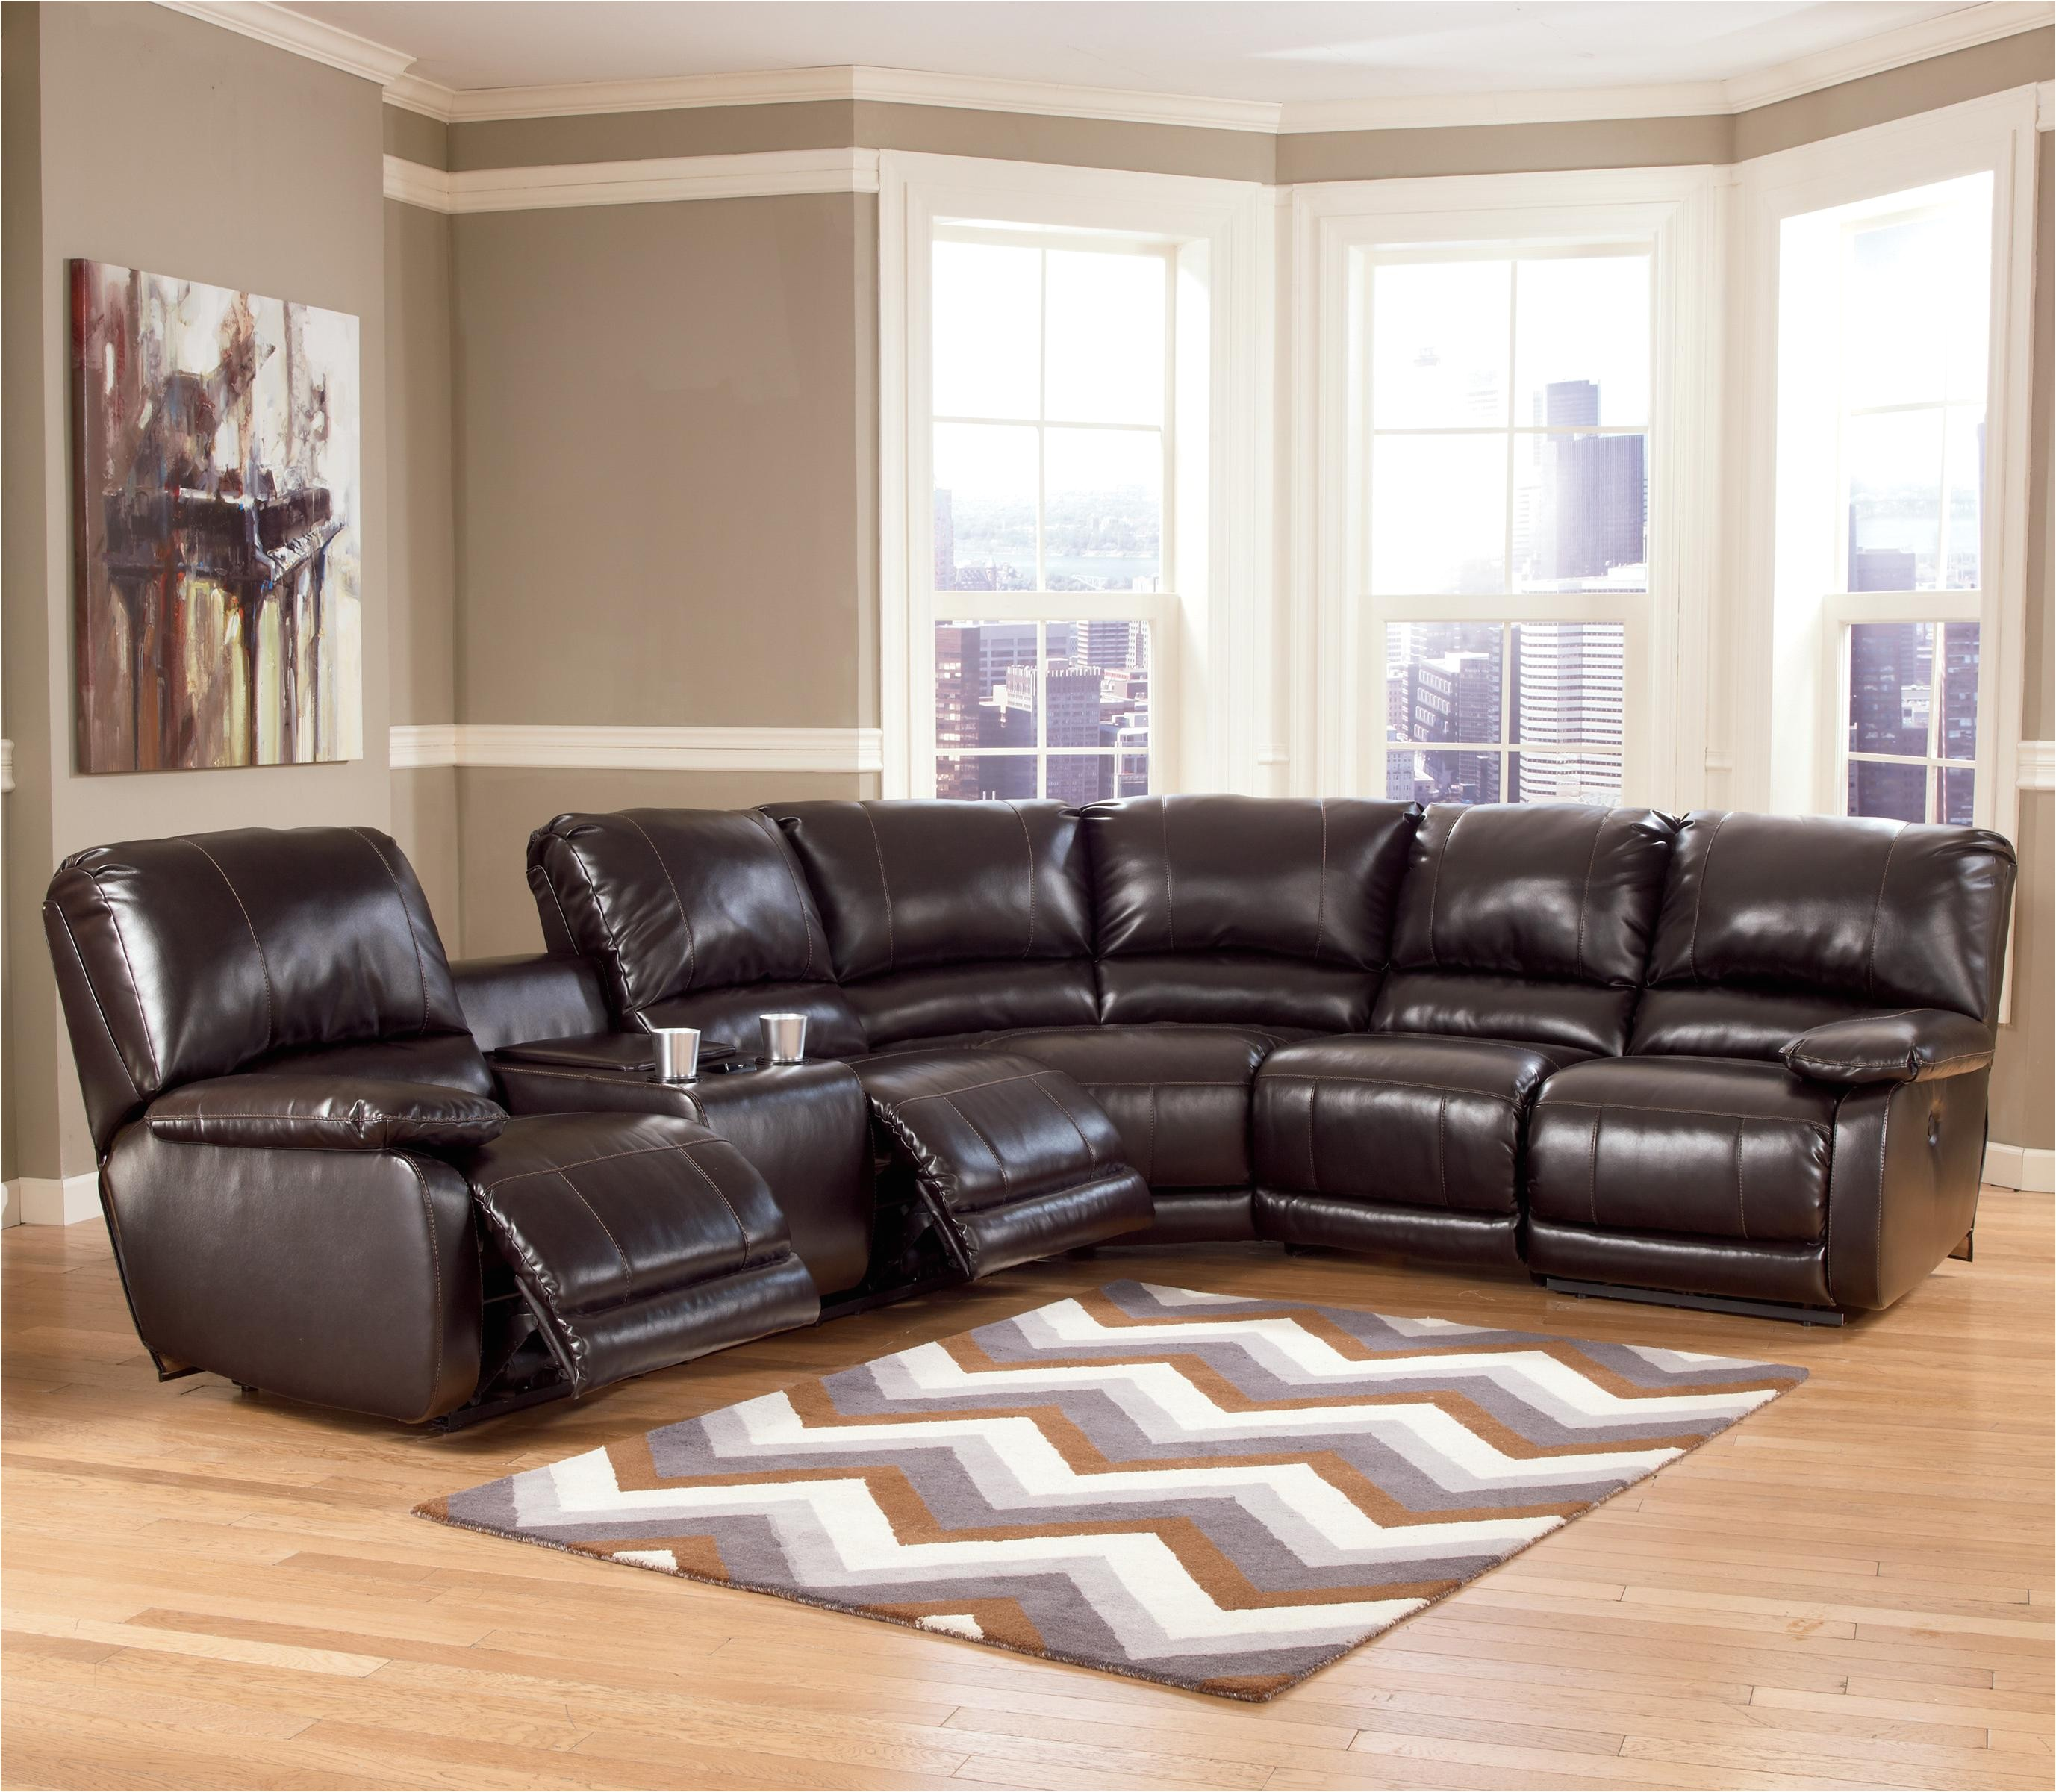 signature design by ashley capote durablenda chocolate power reclining sectional with heat massage and storage ahfa reclining sectional sofa dealer